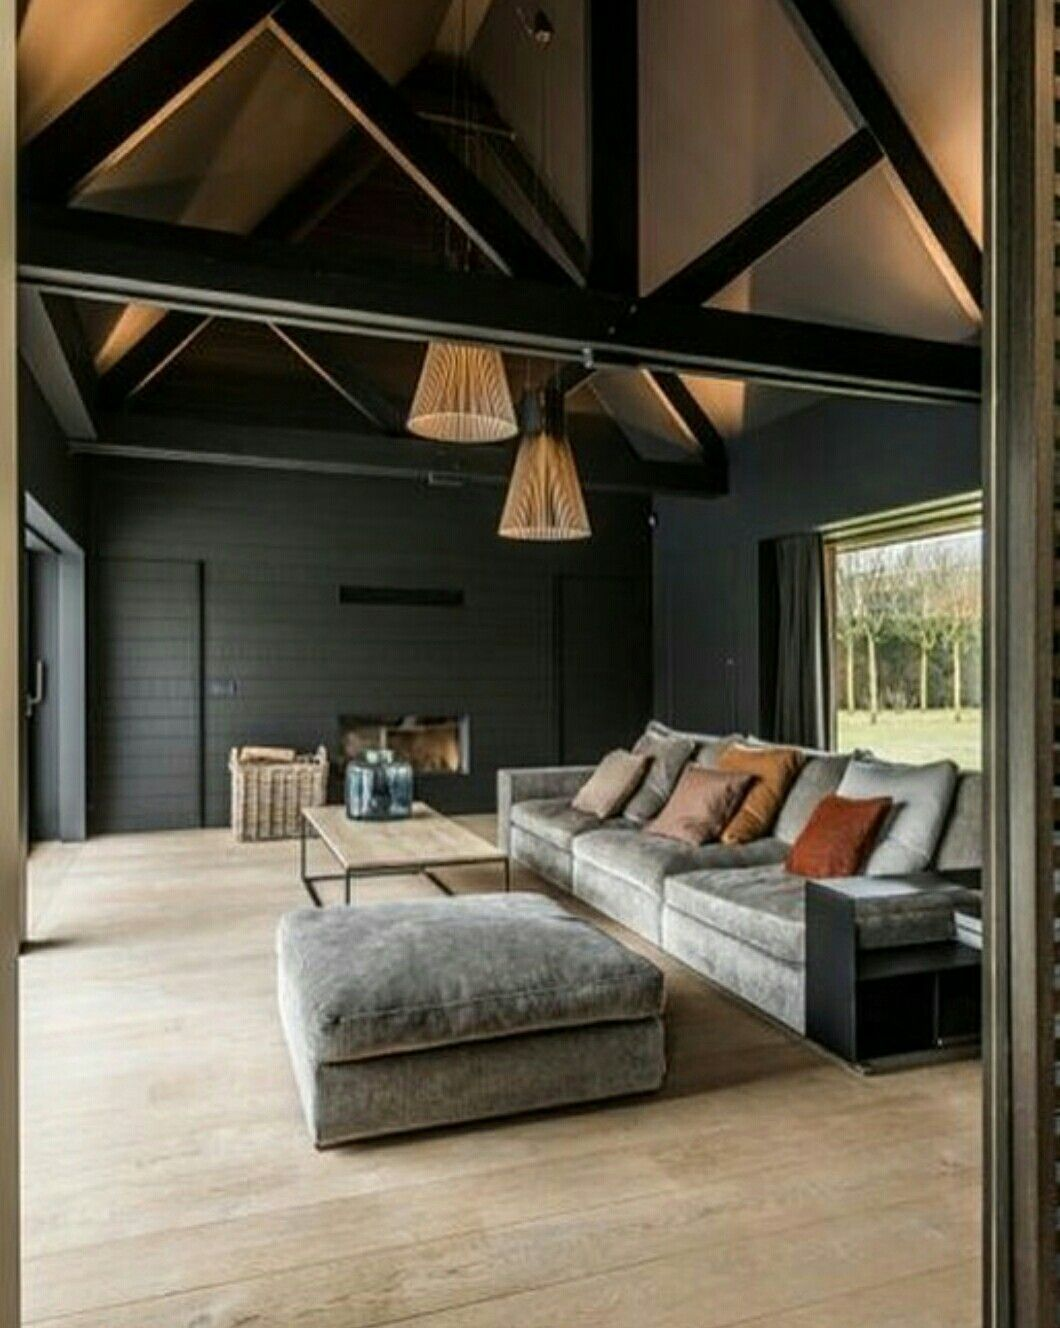 Home hall design-ideen pin by abelkane on house u design  pinterest  tiny houses and house